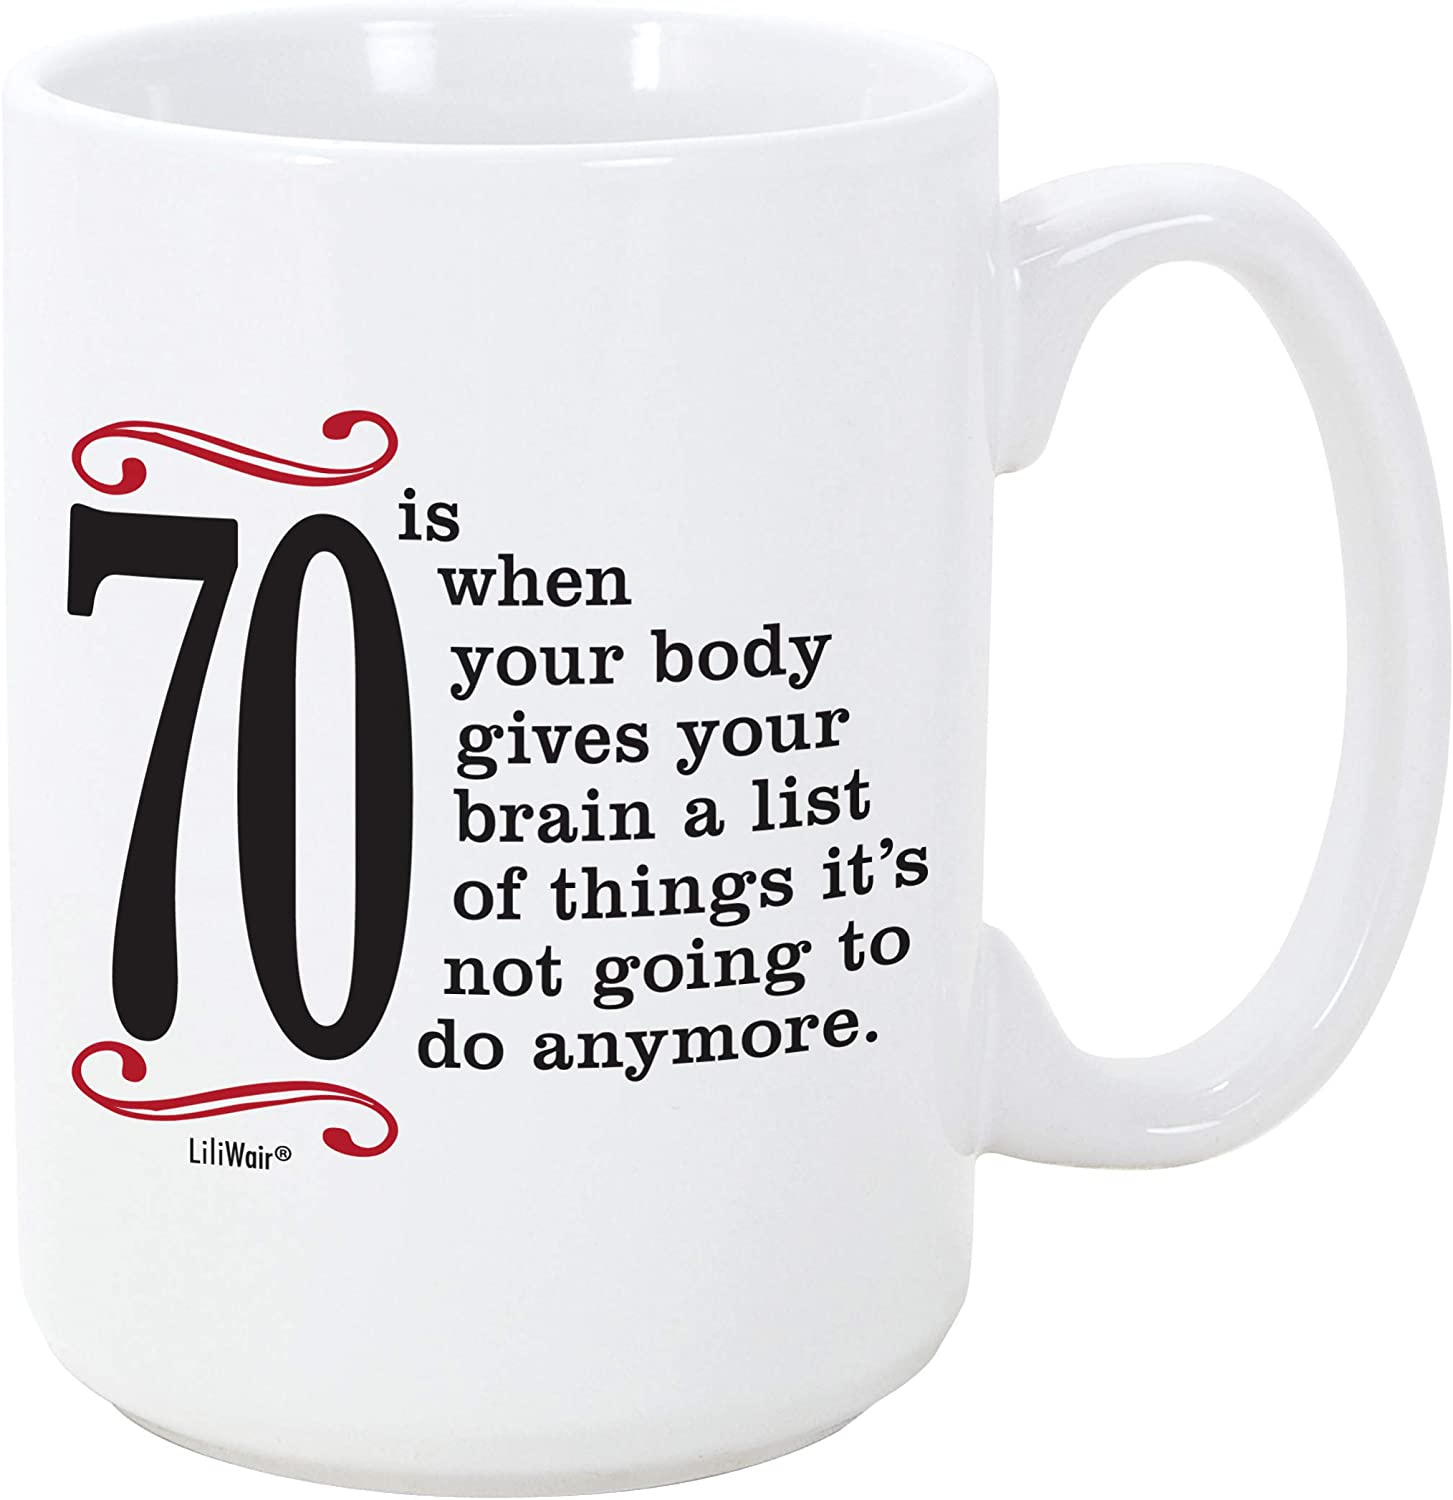 1950 70th Birthday Gifts Men Women   Birthday Gift for Man Woman turning 70   Funny 70 th Party Supplies Decorations Ideas   Seventy Year Old Bday Coffee Mug   70 Years Gag Office Cup